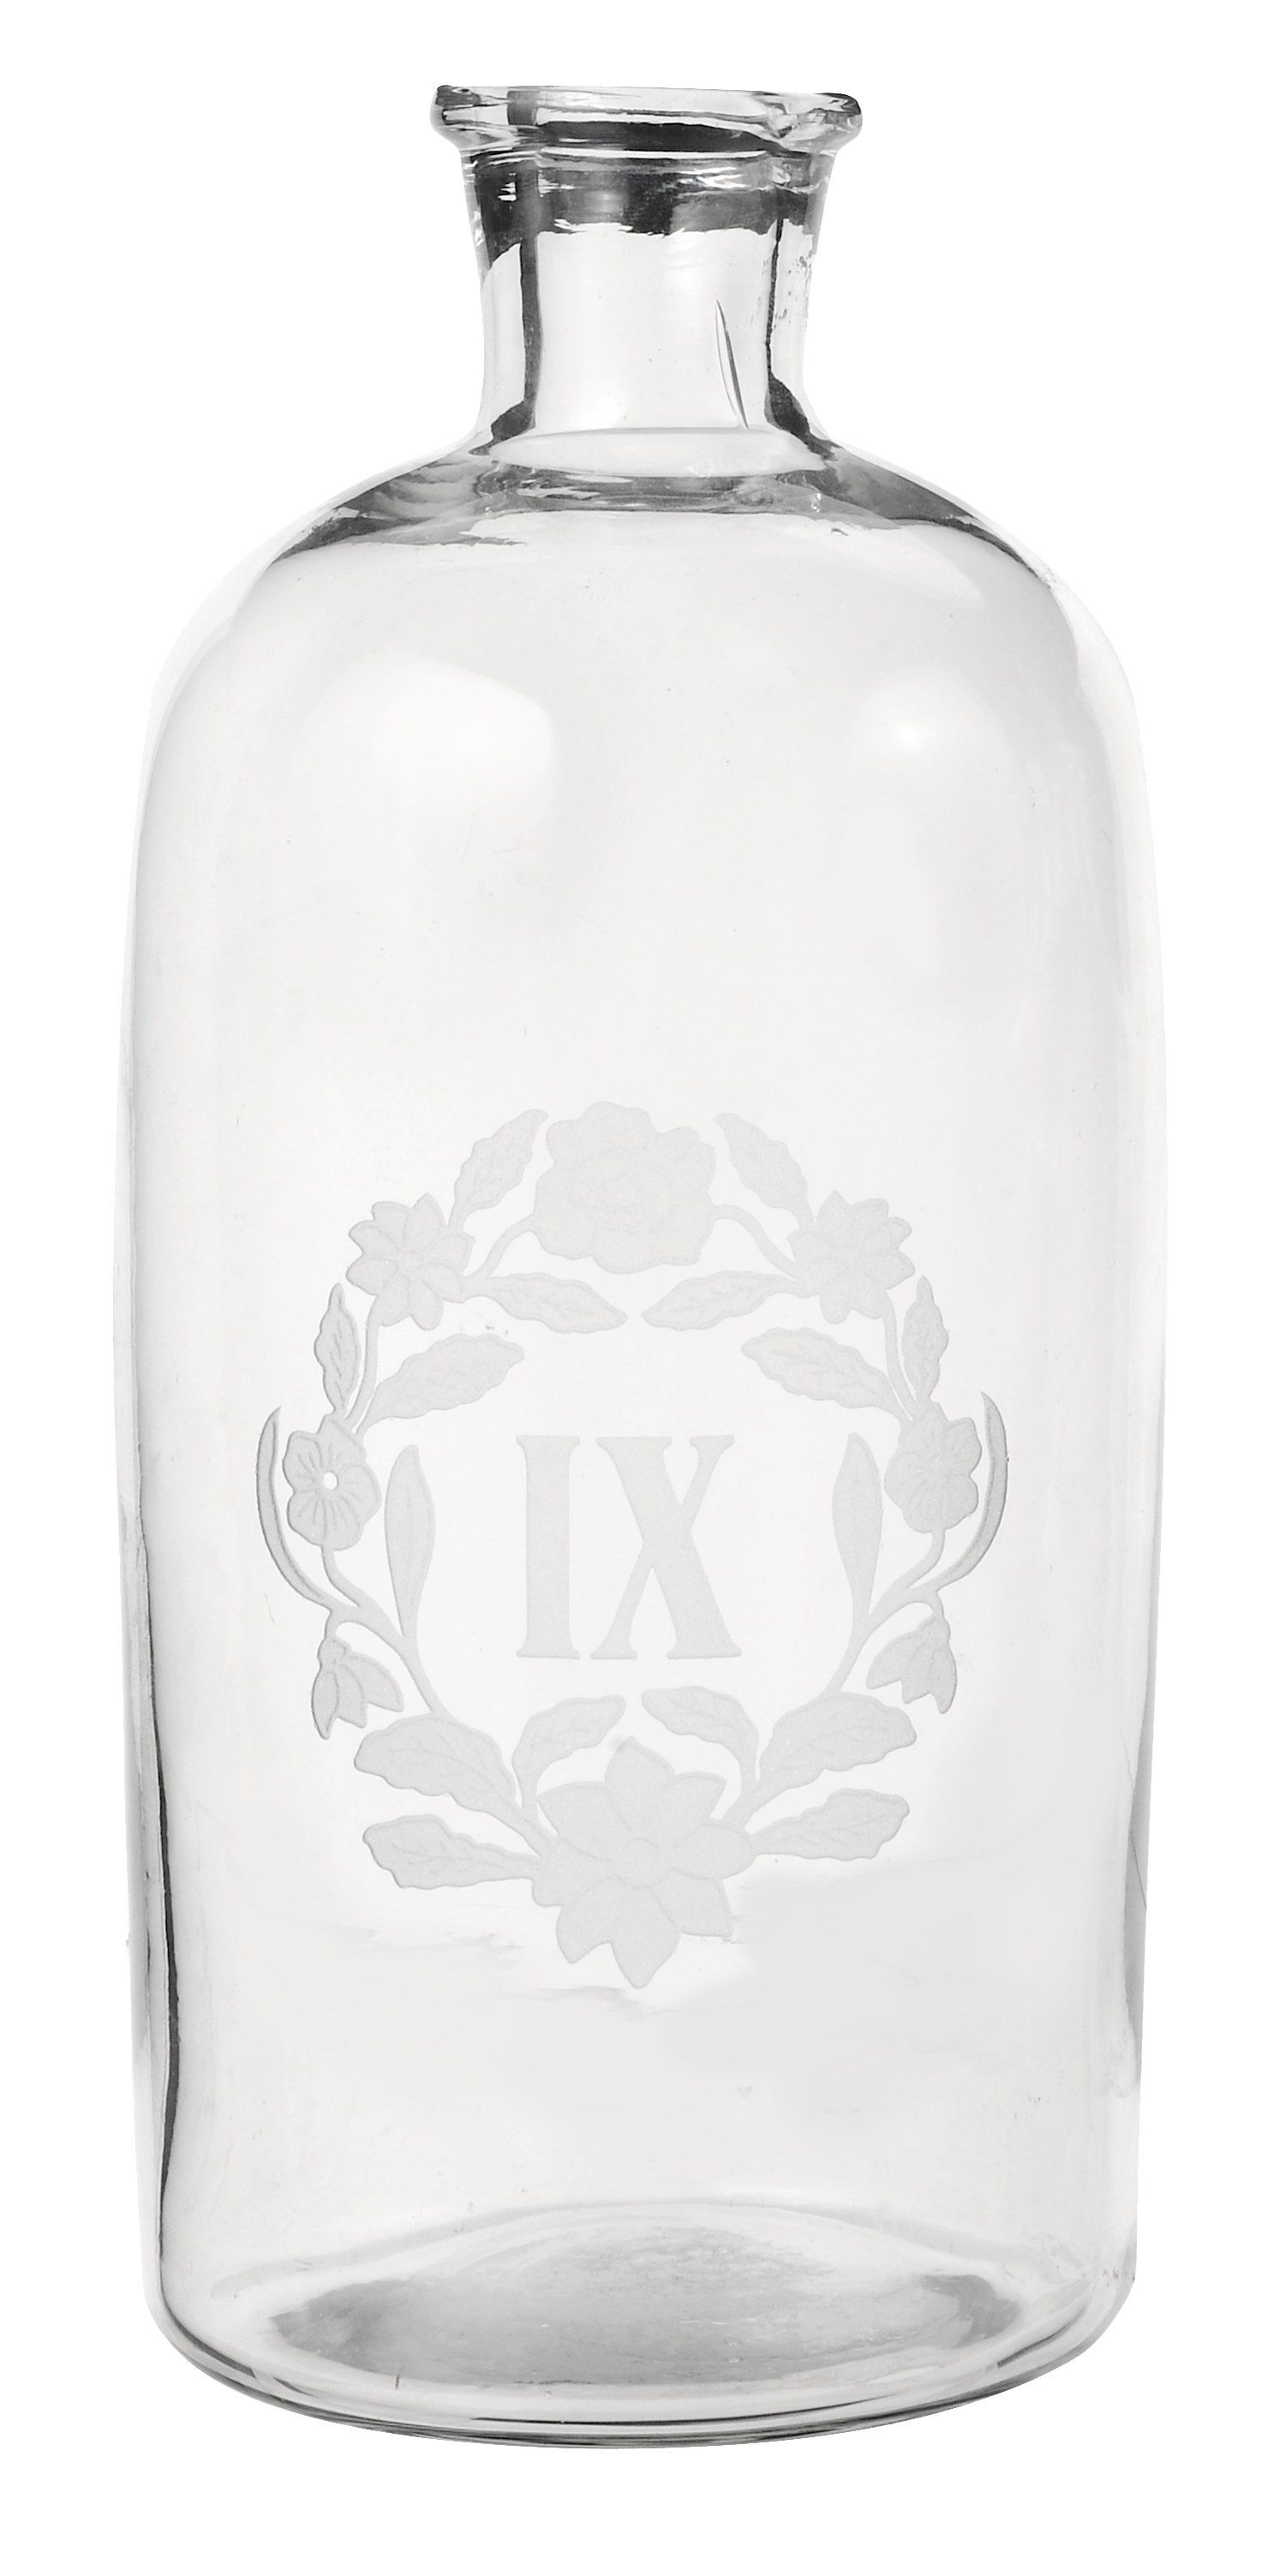 Medium decorative glass bottle